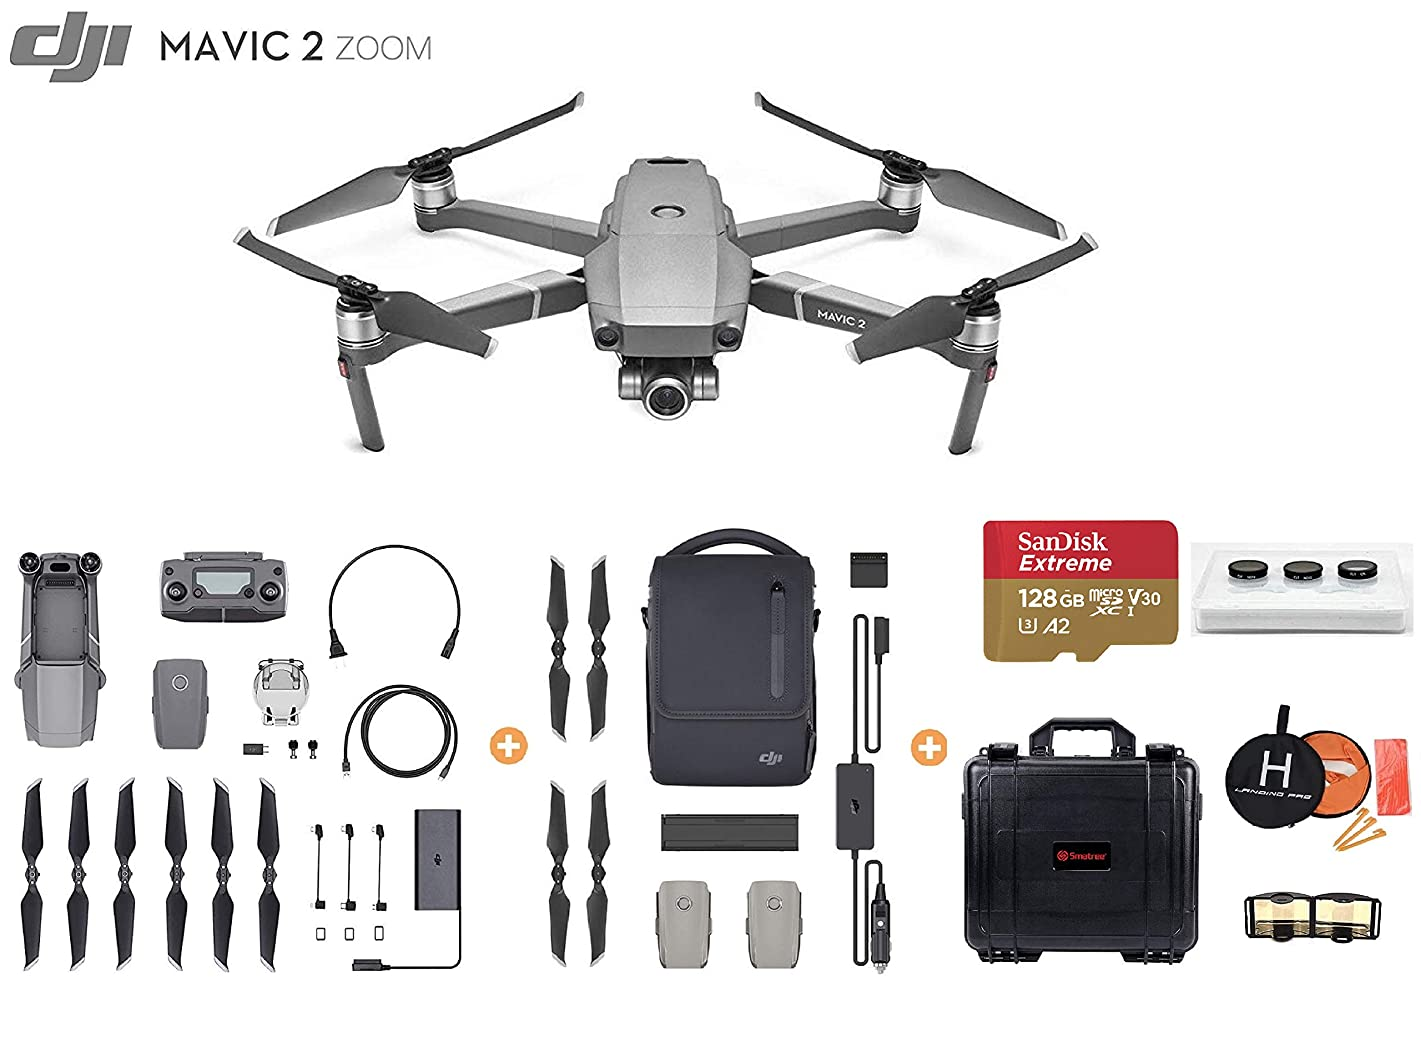 Mavic 2 Zoom with Fly More Kit, Ultimate Bundle, Smartree Waterproof Hard Case, 3-Filter Set (CPL ND16 ND32), 128 GB Extreme MicroSD, Landing Pad, and More